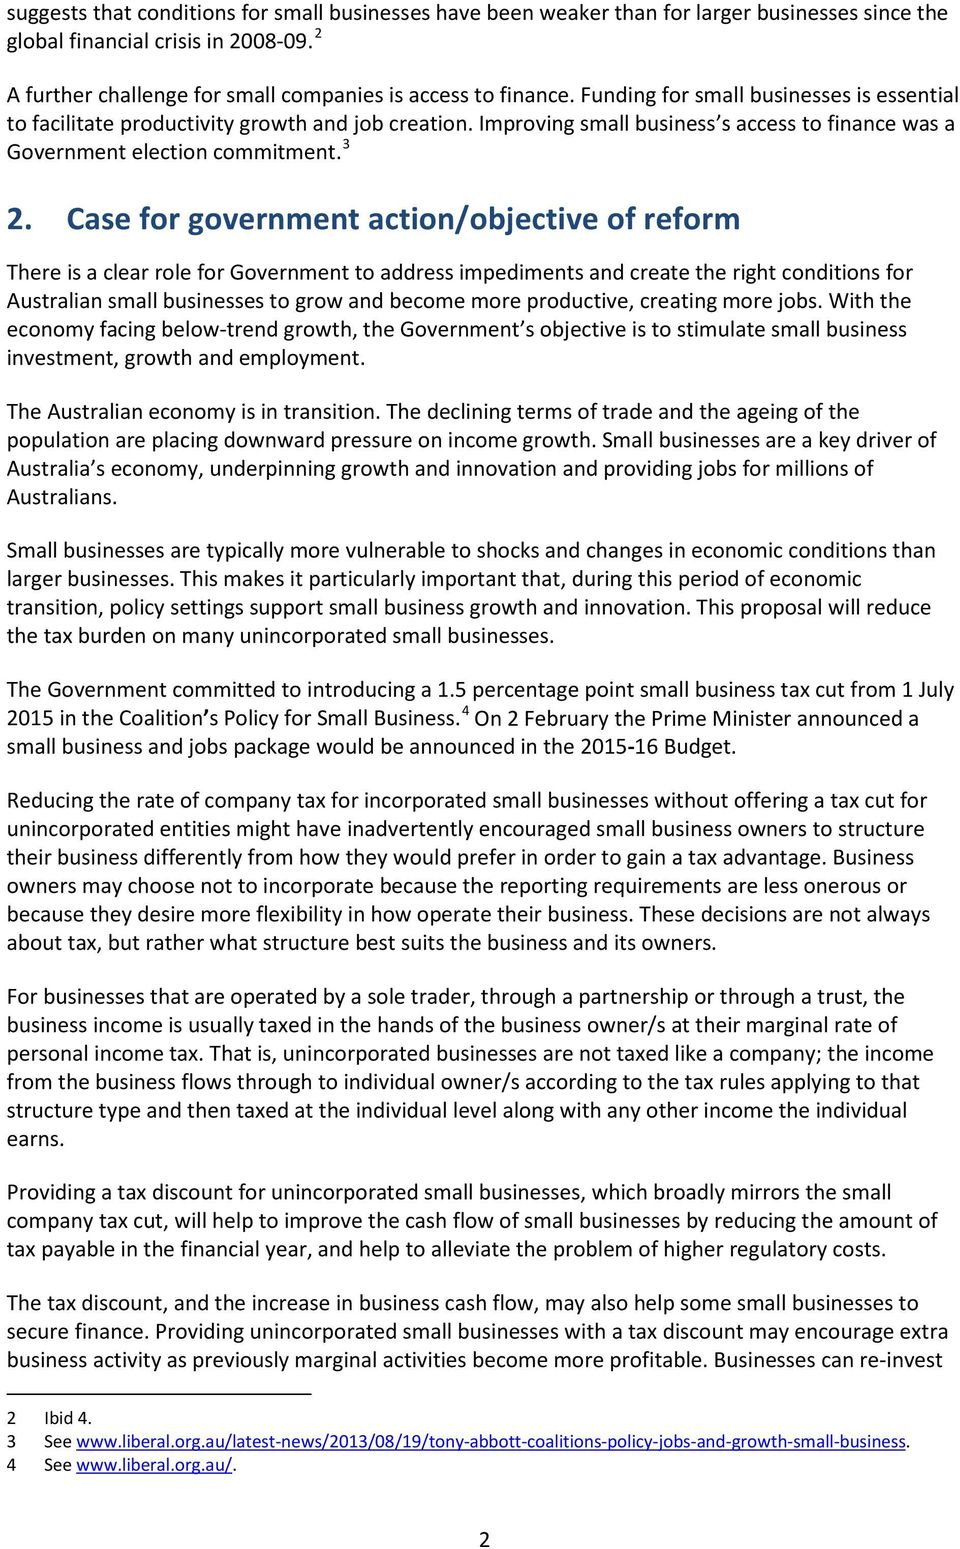 Case for government action/objective of reform There is a clear role for Government to address impediments and create the right conditions for Australian small businesses to grow and become more